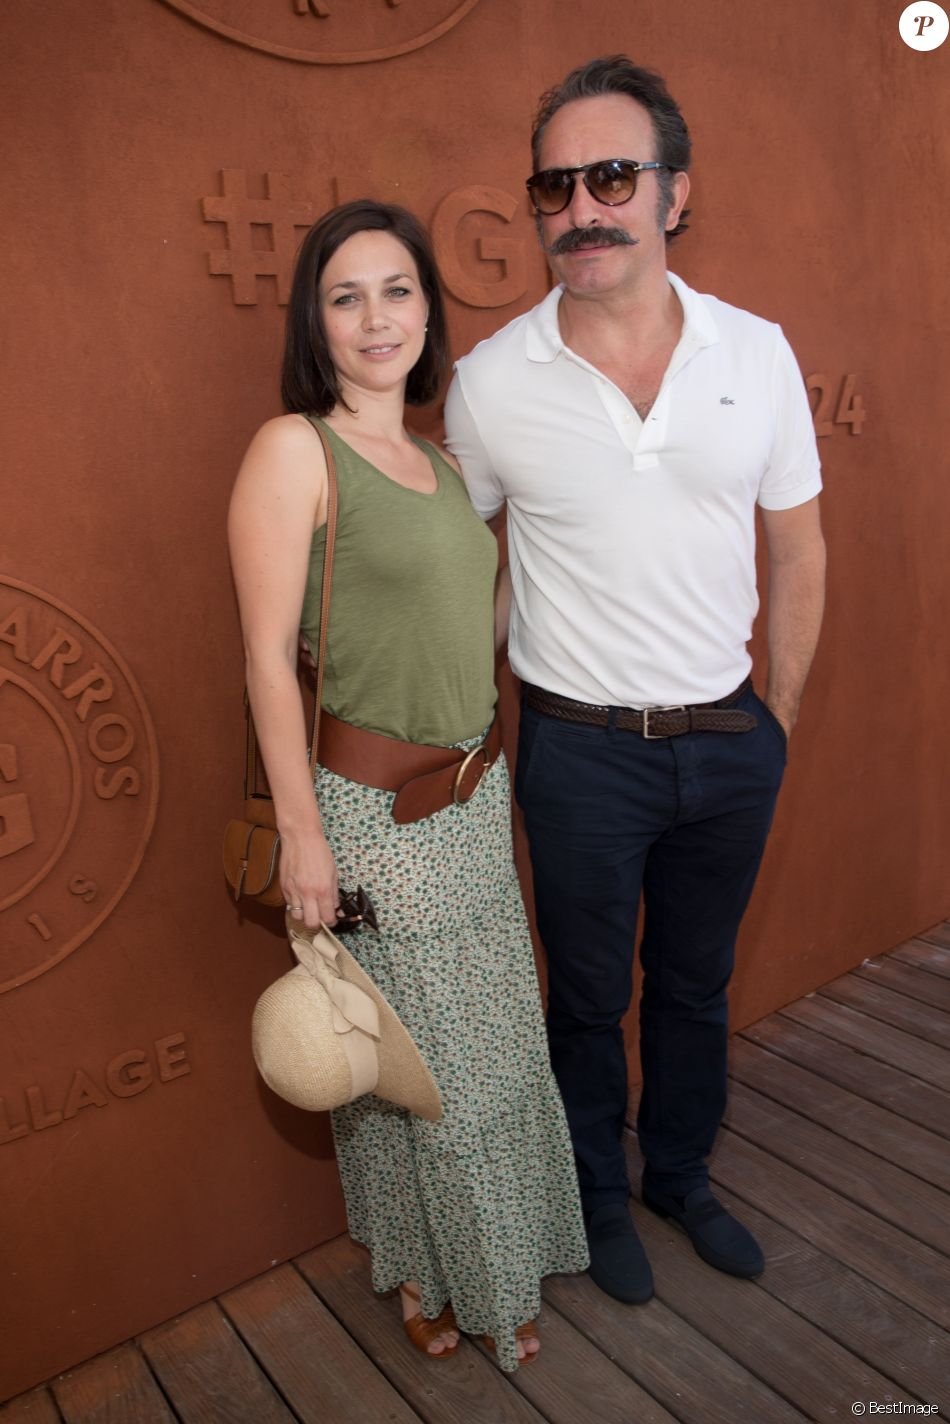 Jean Dujardin et sa compagne Nathalie Pechalat au village lors de la finale homme des internationaux de France de Roland Garros à Paris, le 11 juin 2017. © Dominique Jacovides - Cyril Moreau/ Bestimage  Celebrities at the village during the Roland Garros 2017 French Open in Paris, on June 11, 201711/06/2017 - Paris